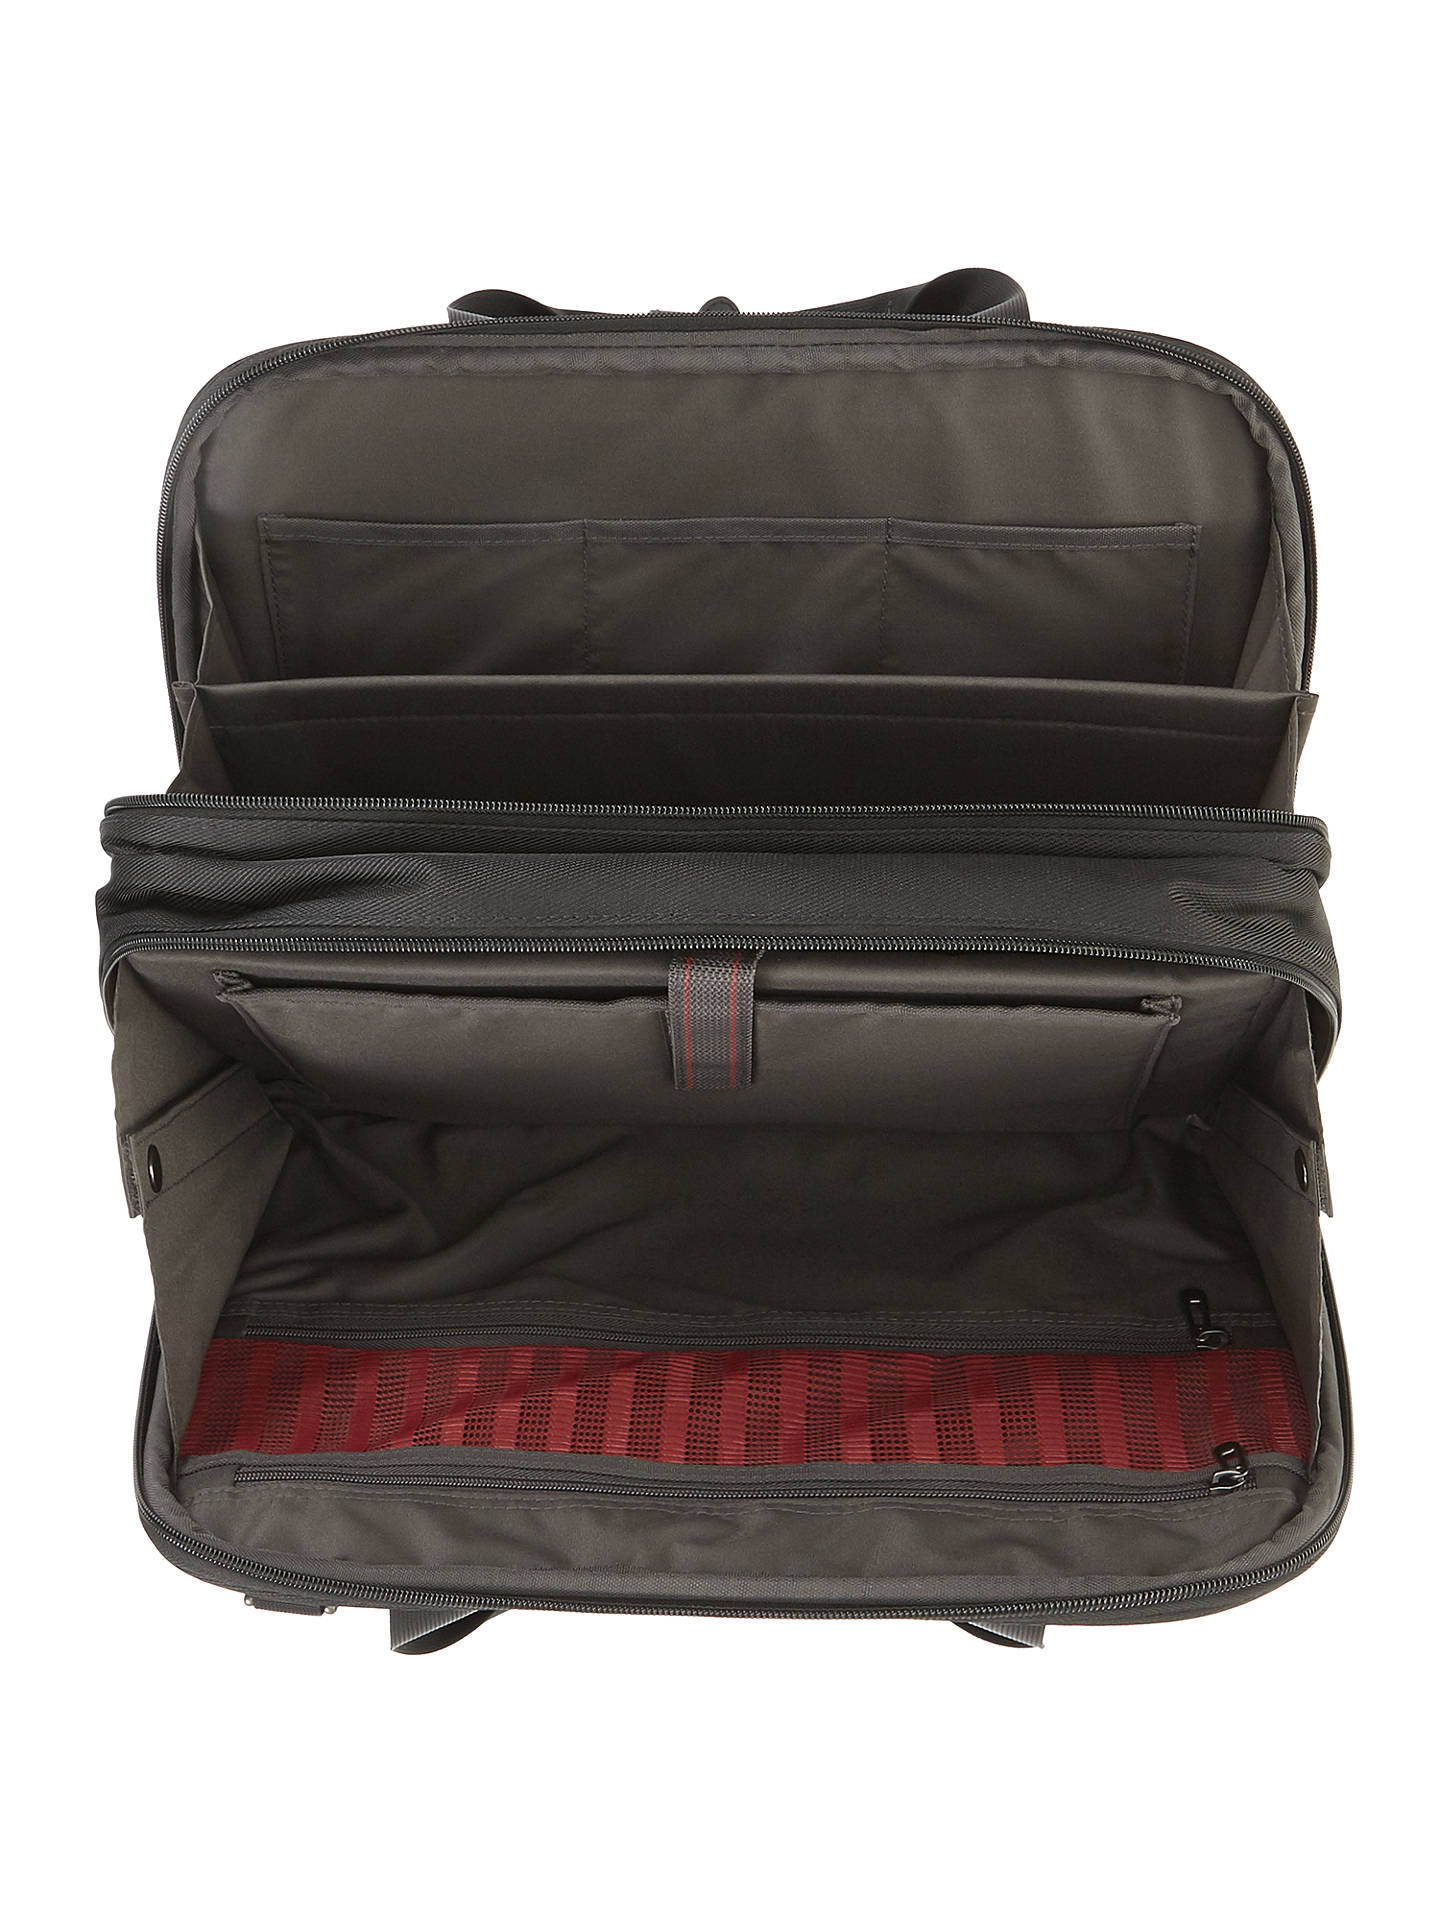 John Lewis Partners Raise 17 Laptop Bag Black At John Lewis Partners